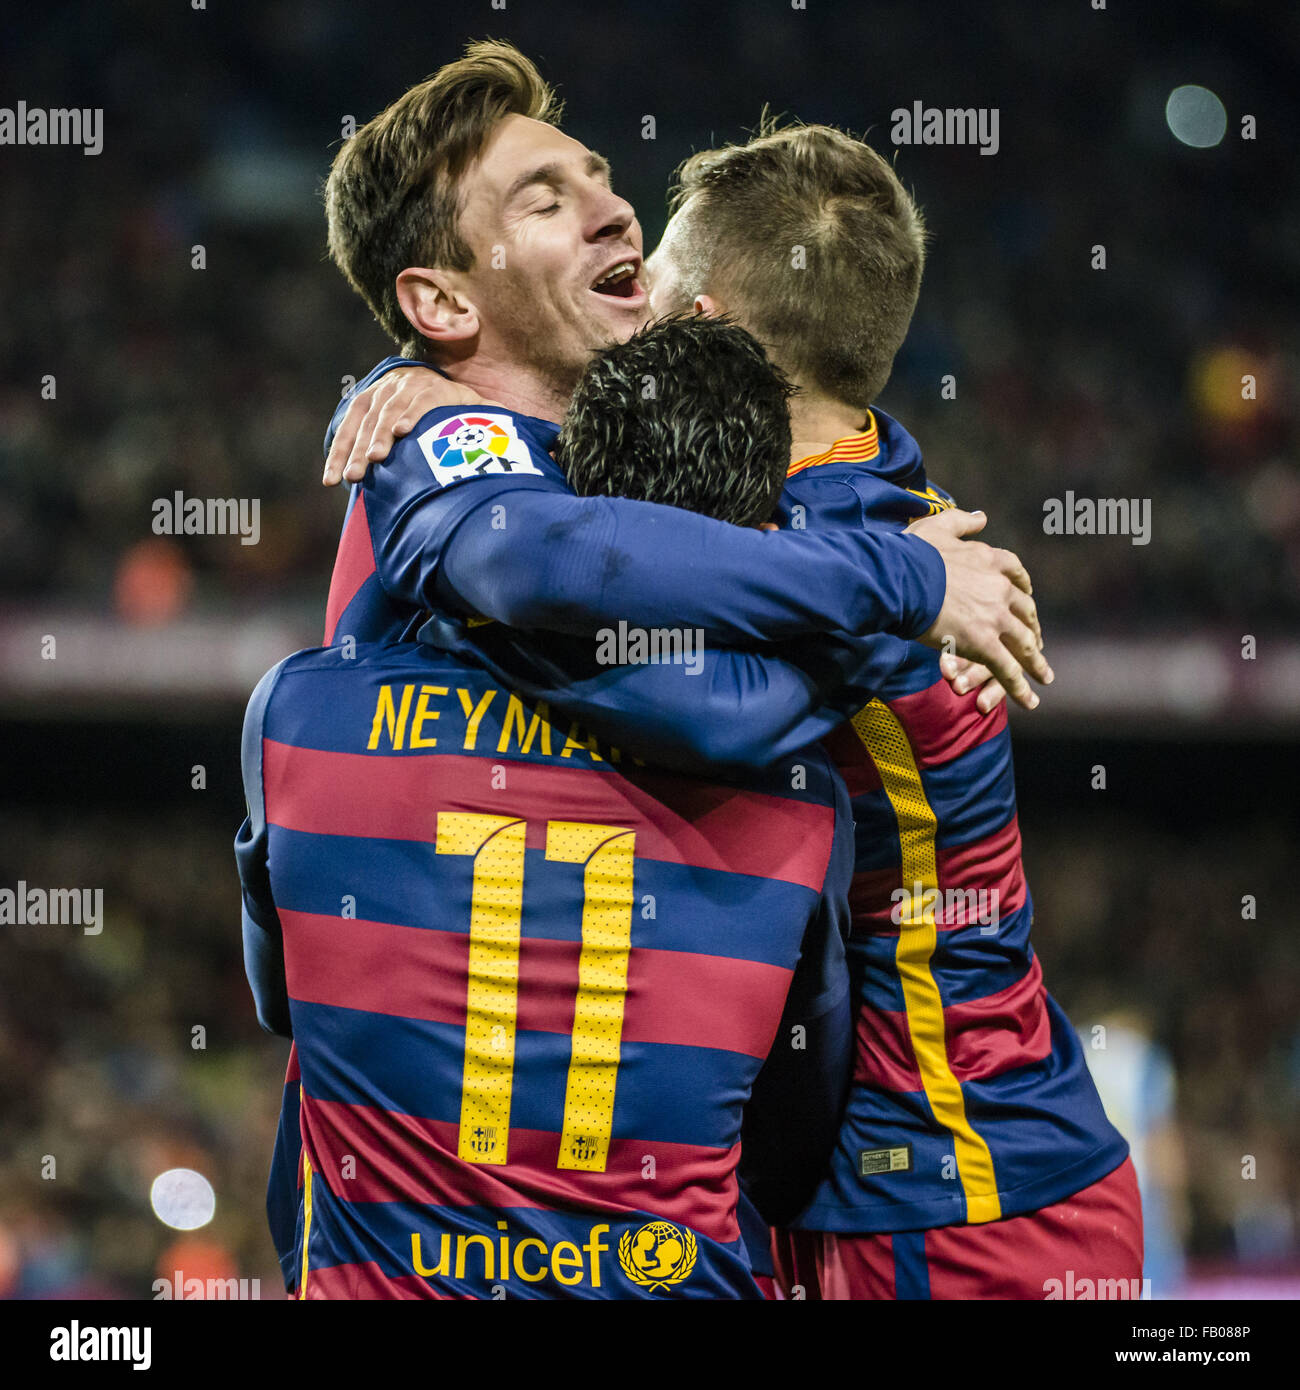 lionel messi stockfotos lionel messi bilder alamy. Black Bedroom Furniture Sets. Home Design Ideas